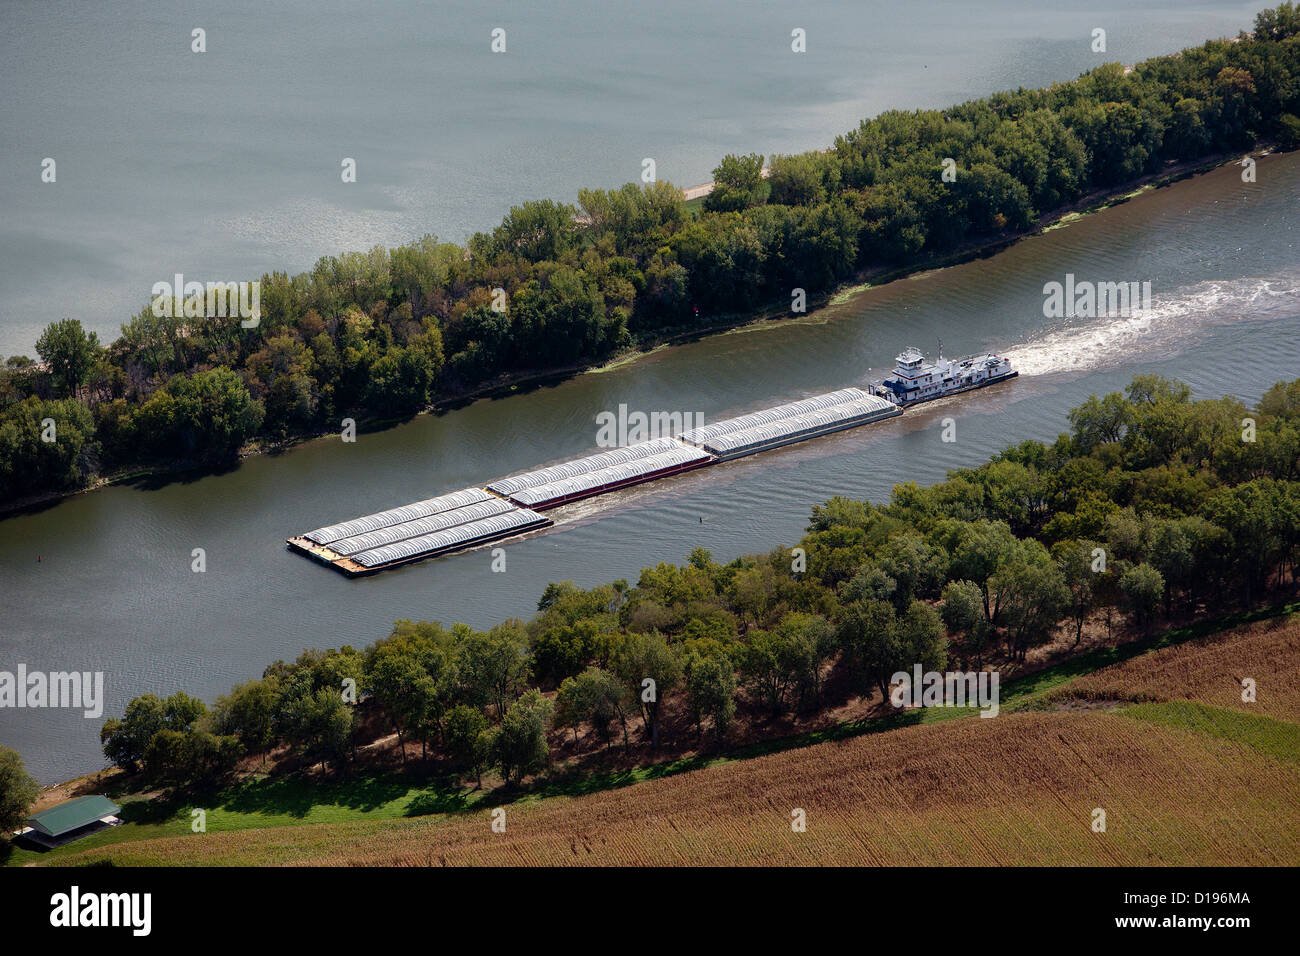 aerial photograph barge Illinois Waterway, Illinois River - Stock Image